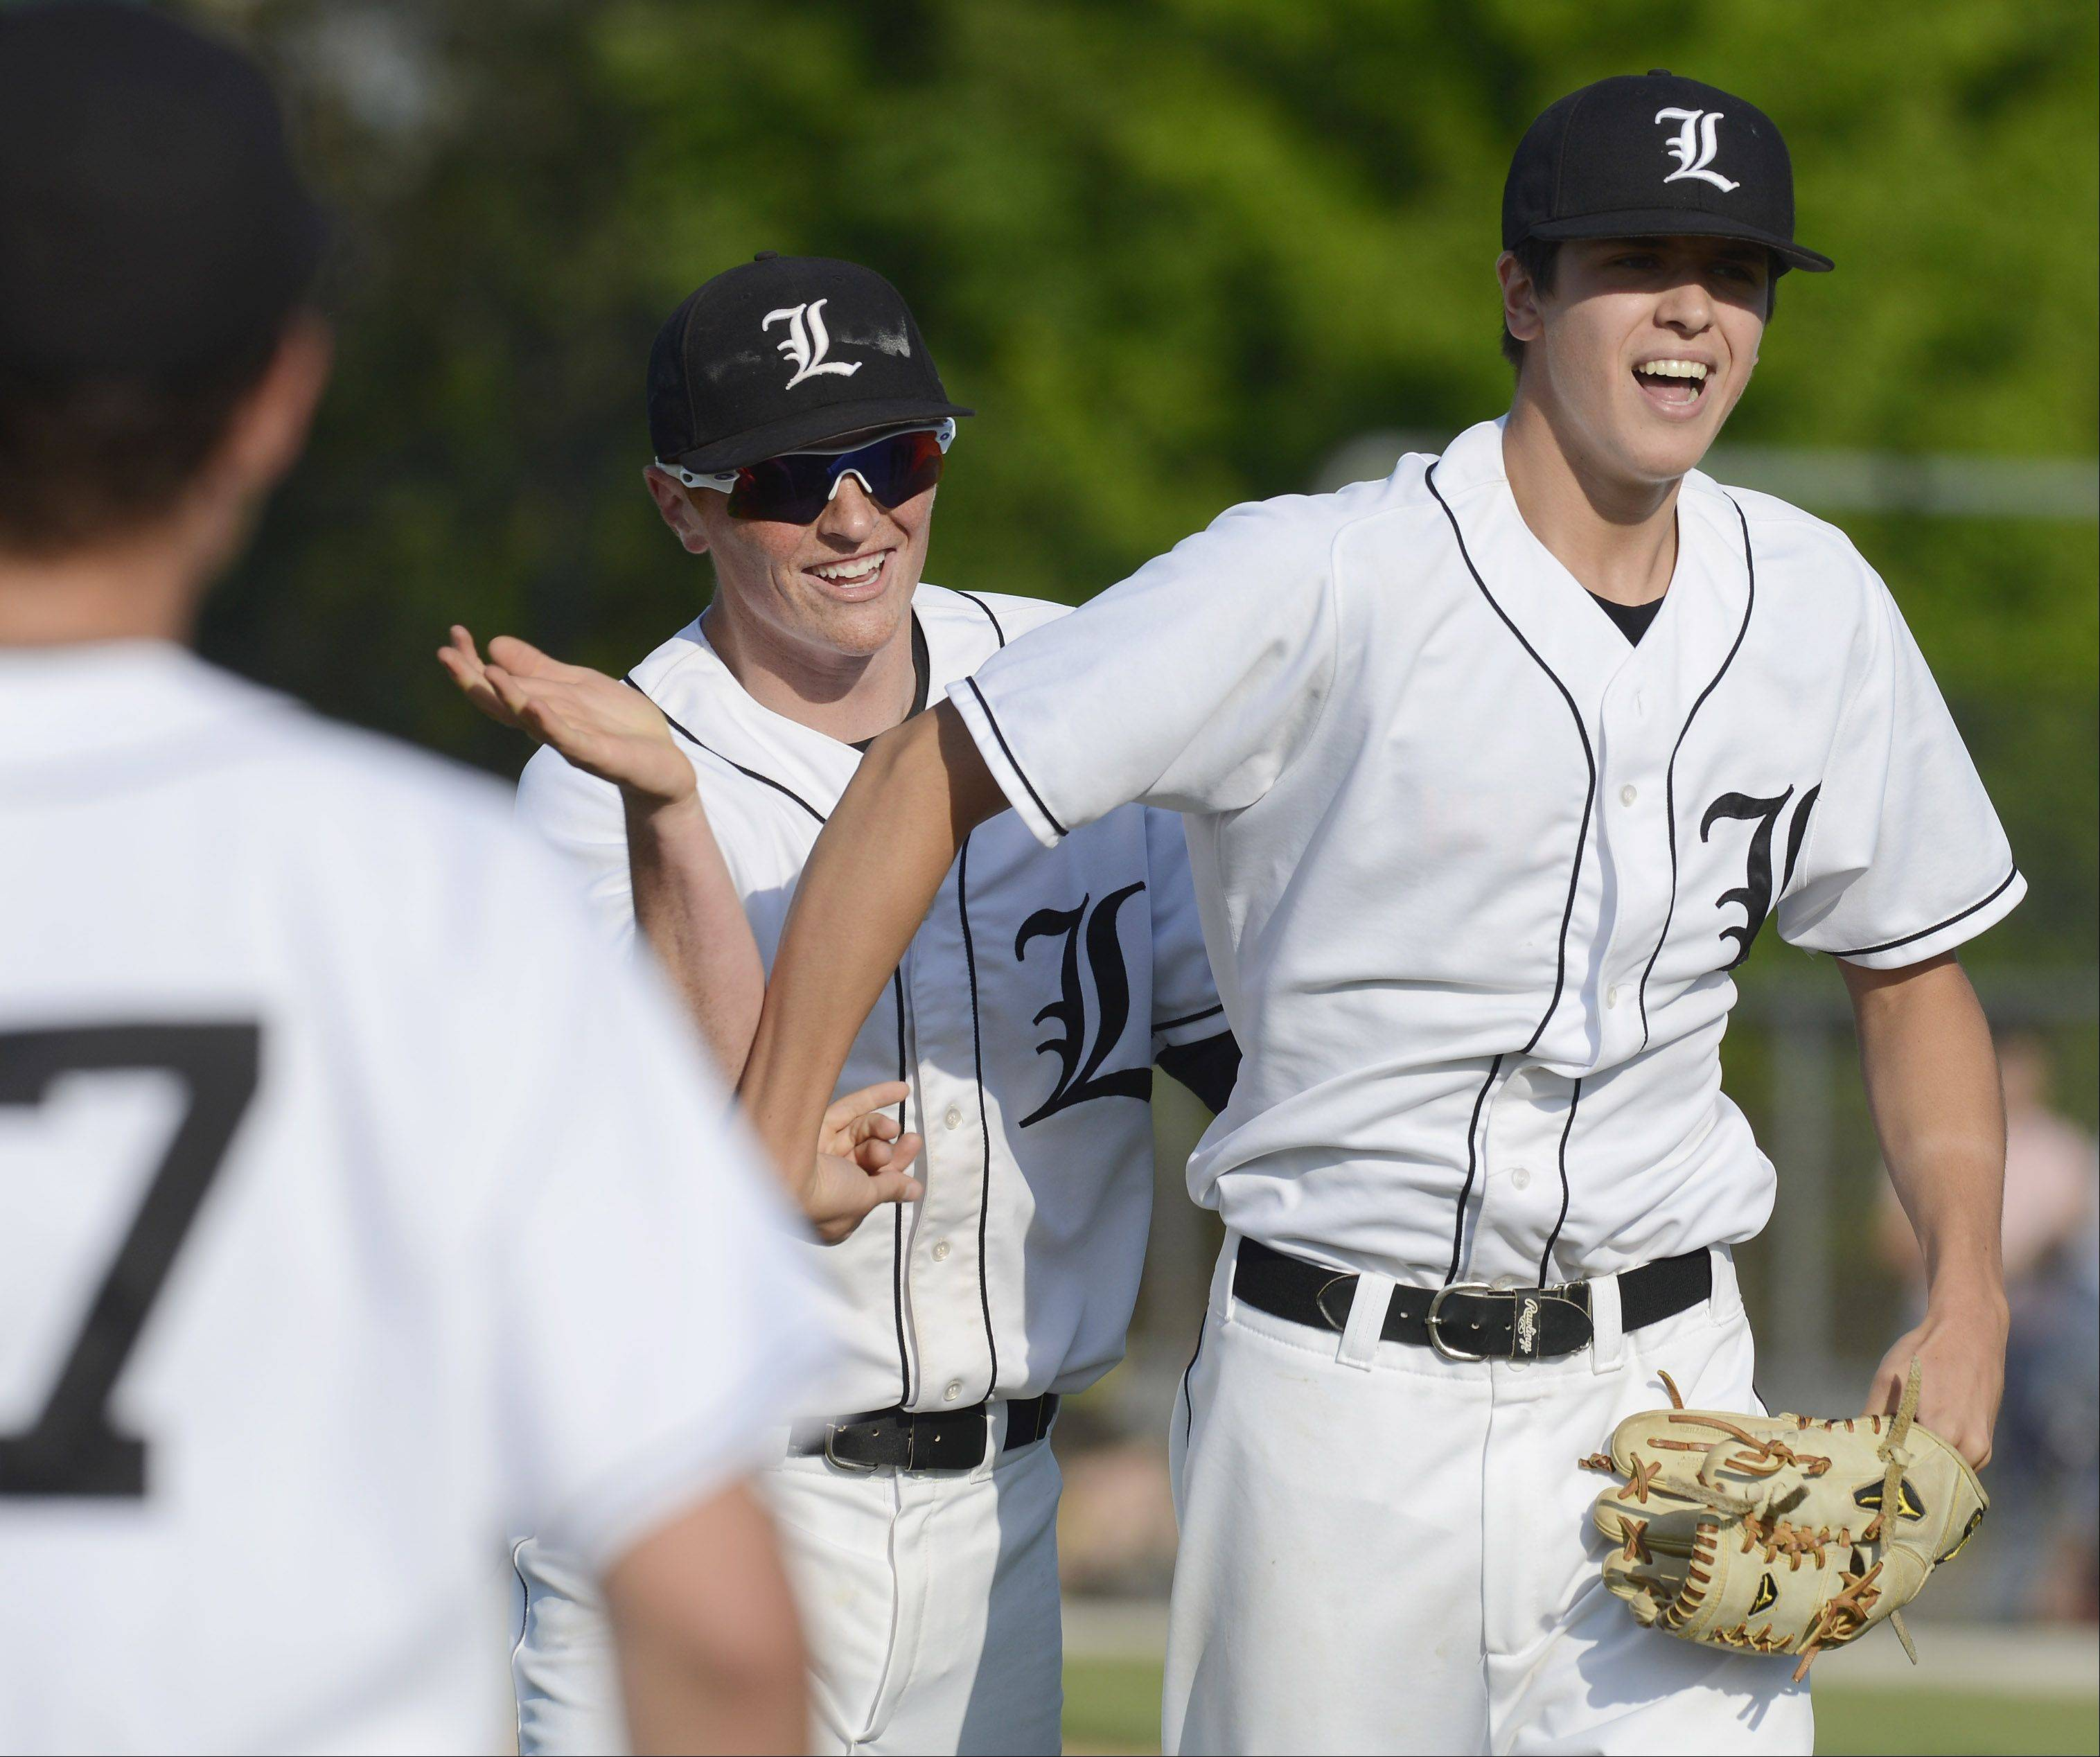 Libertyville pitcher Nate Cote celebrates with his teammates after the Wildcats defeated Fremd 2-1 during the Glenbrook North sectional semifinal Wednesday.